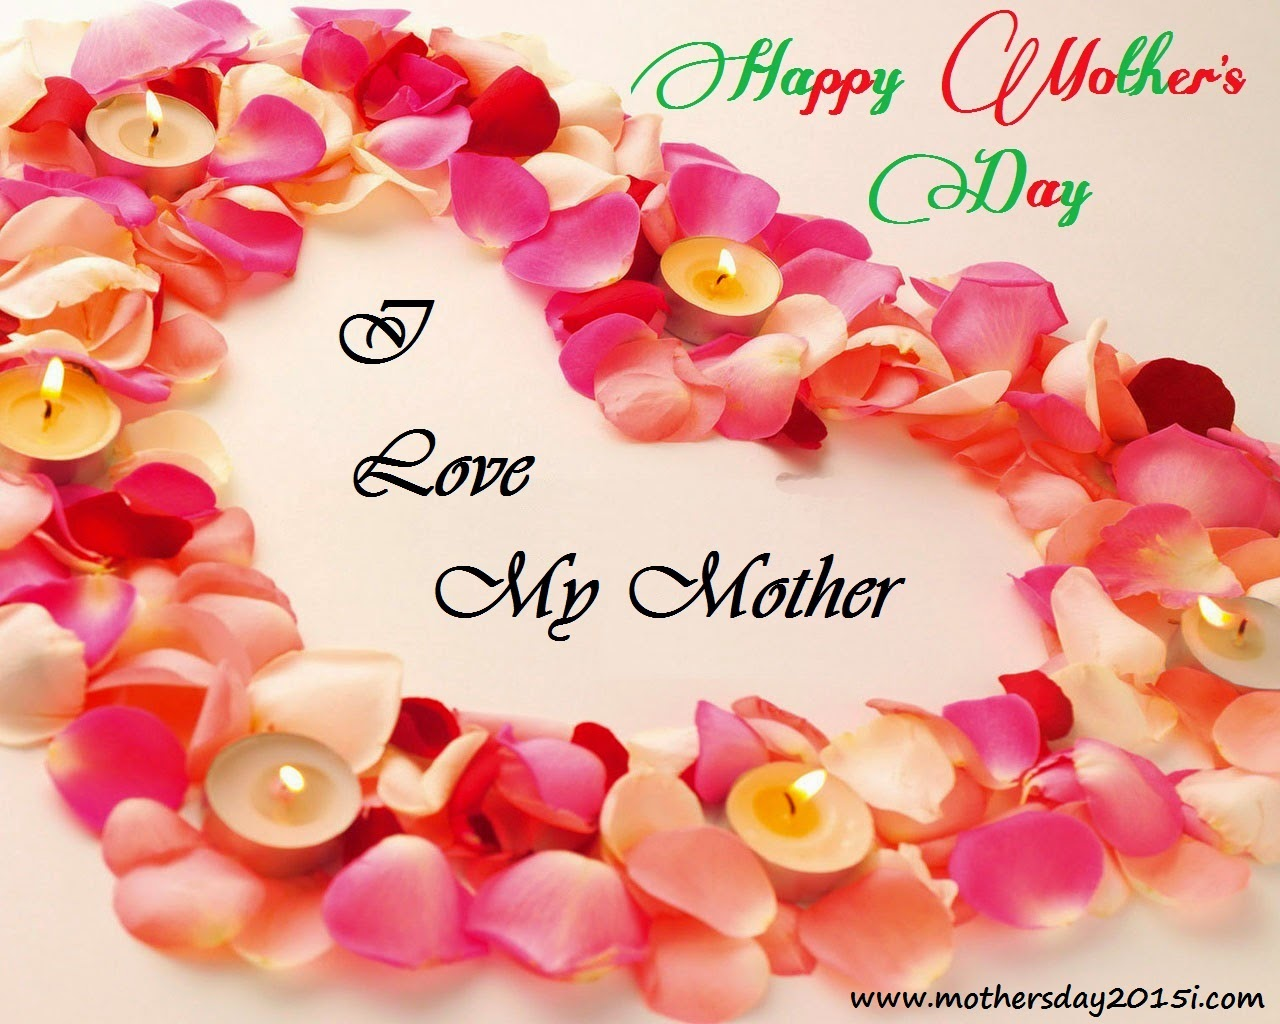 Happy Mother's Day Wishes 2015